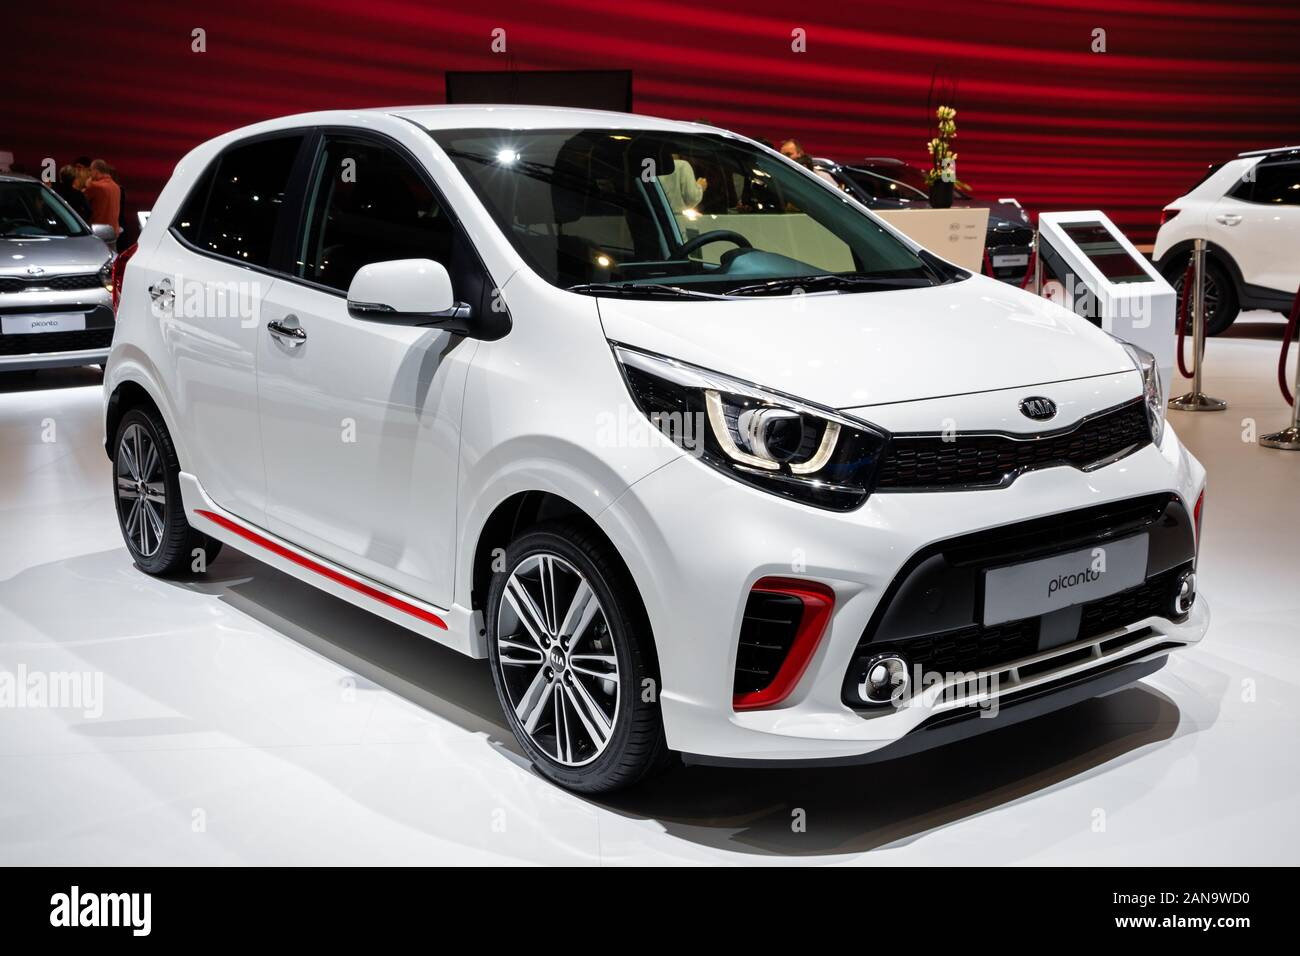 Brussels Jan 9 2020 New Kia Picanto Carmodel Presented At The Brussels Autosalon 2020 Motor Show Stock Photo Alamy